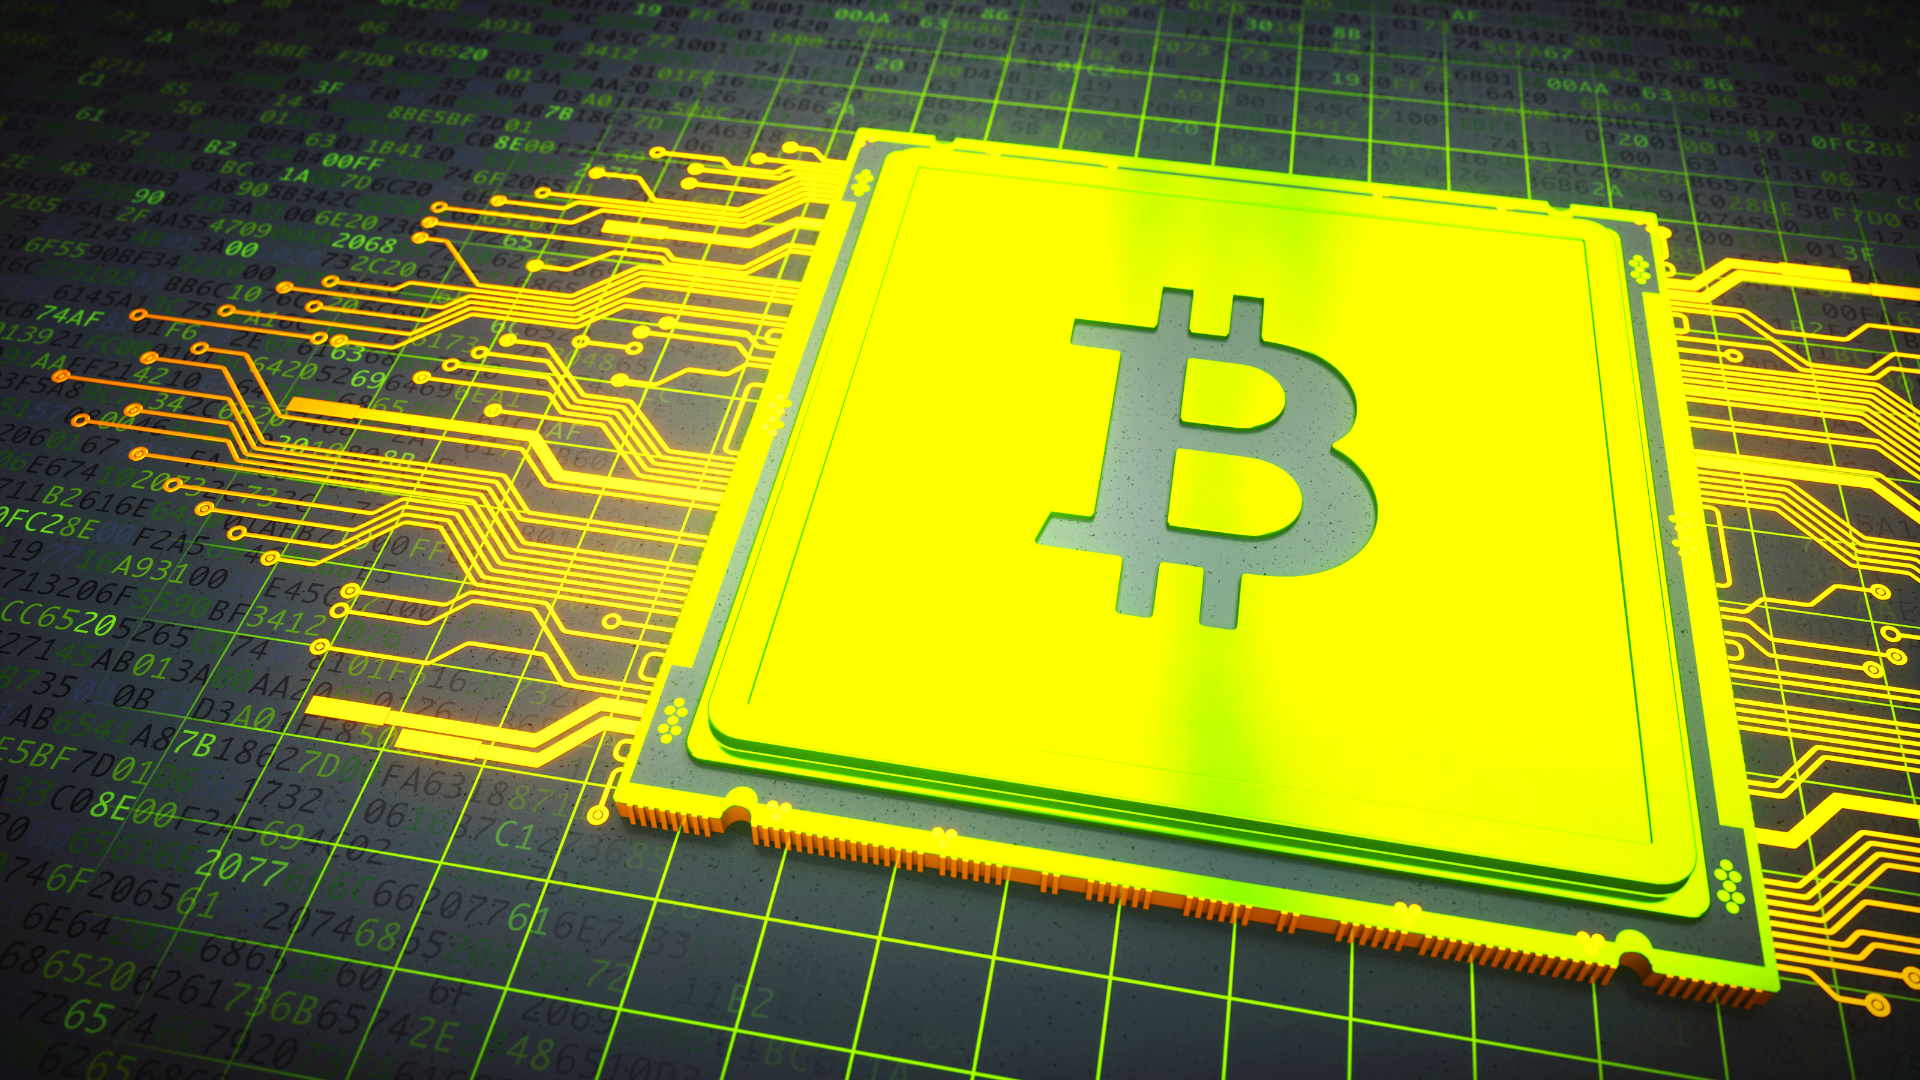 The world's largest bitcoin producer banned bitcoin